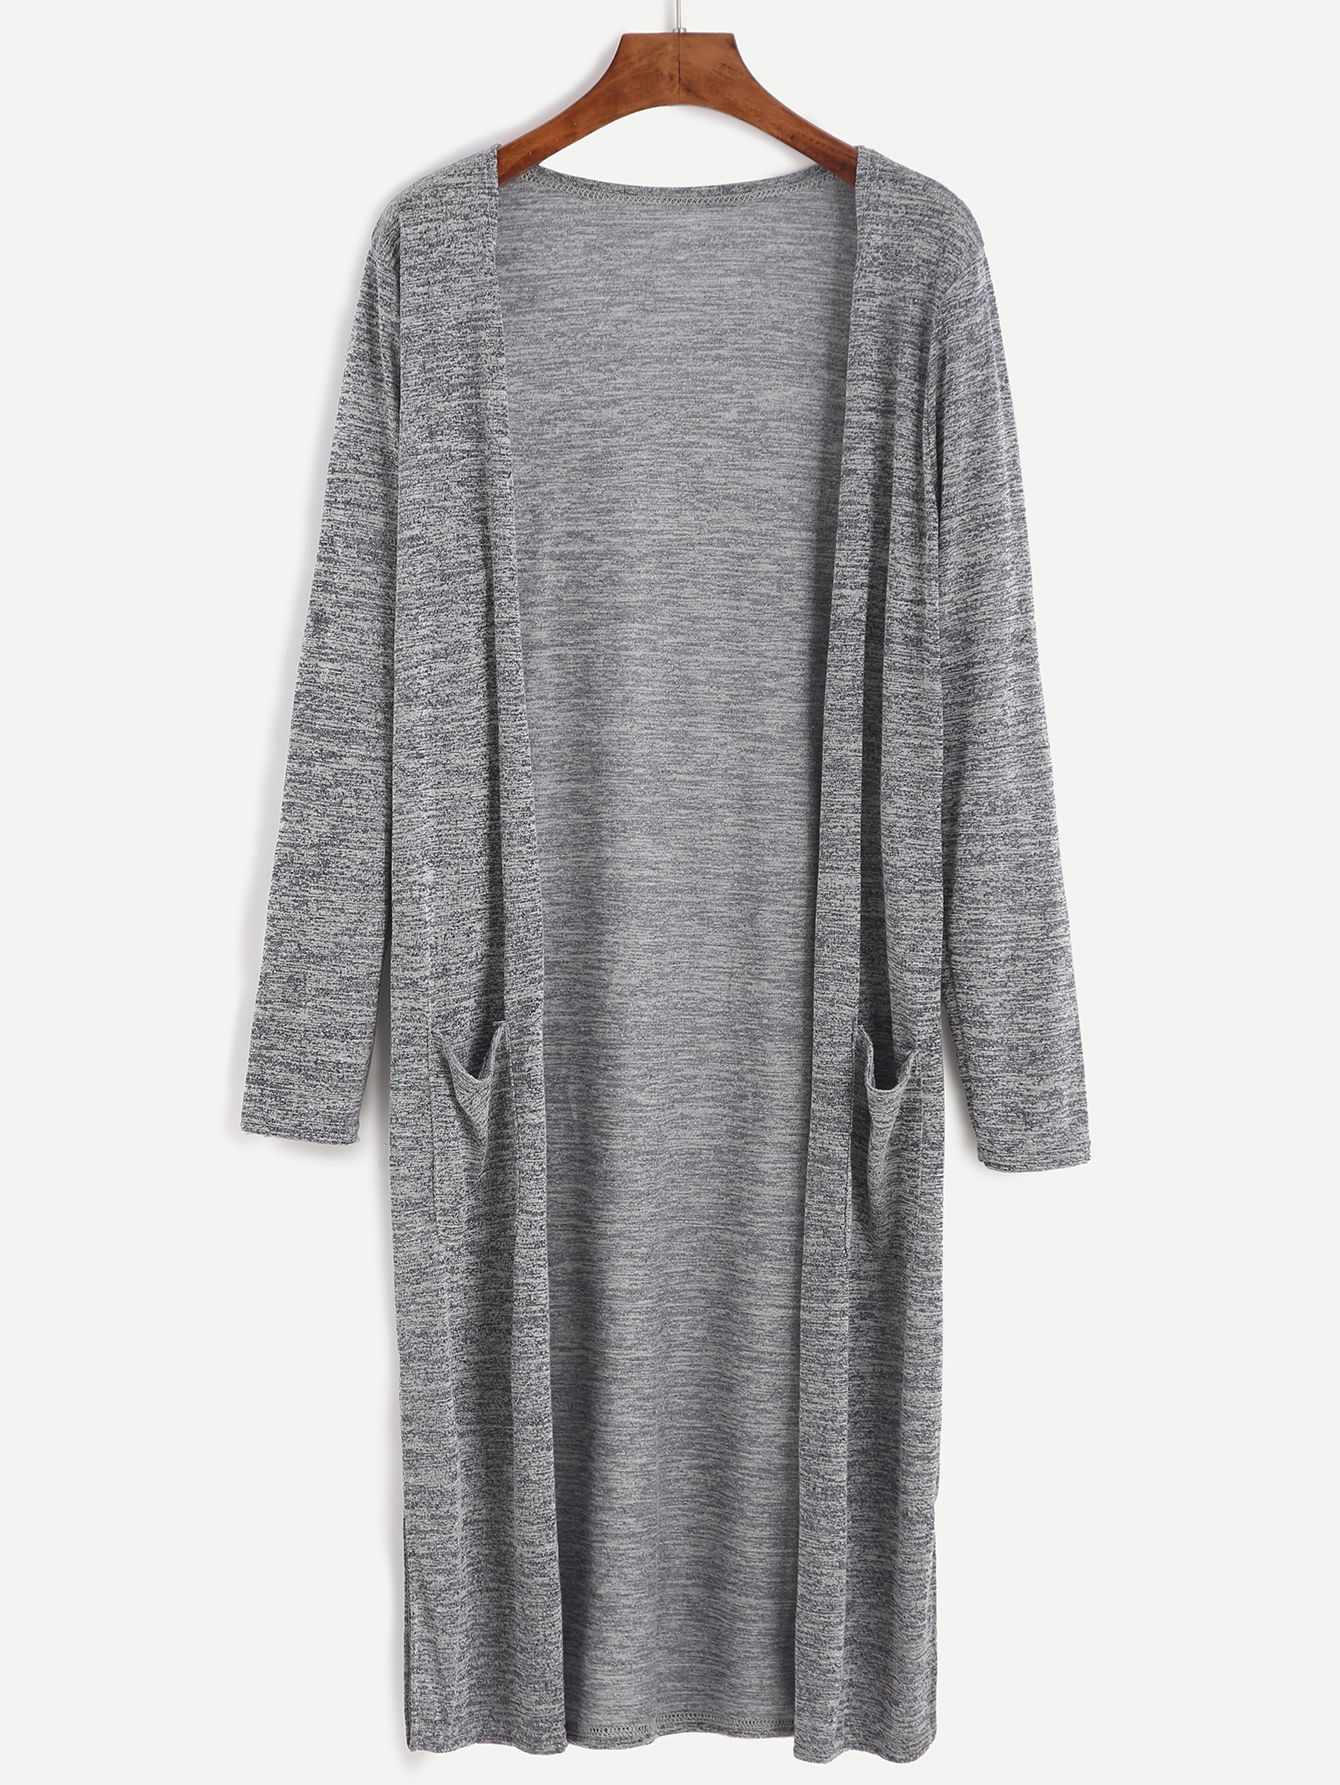 Shop Grey Marled Knit Long Cardigan With Pocket online. SheIn offers Grey Marled Knit Long Cardigan With Pocket & more to fit your fashionable needs.